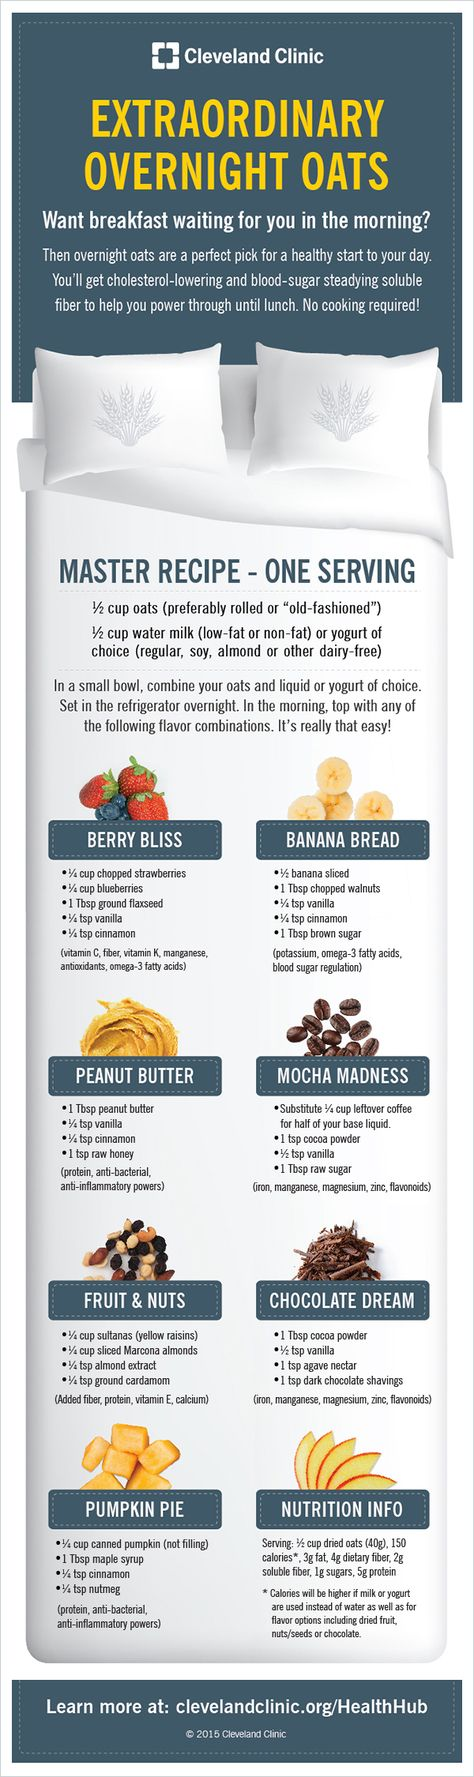 How to make extraordinary oats overnight. #infographic #diet